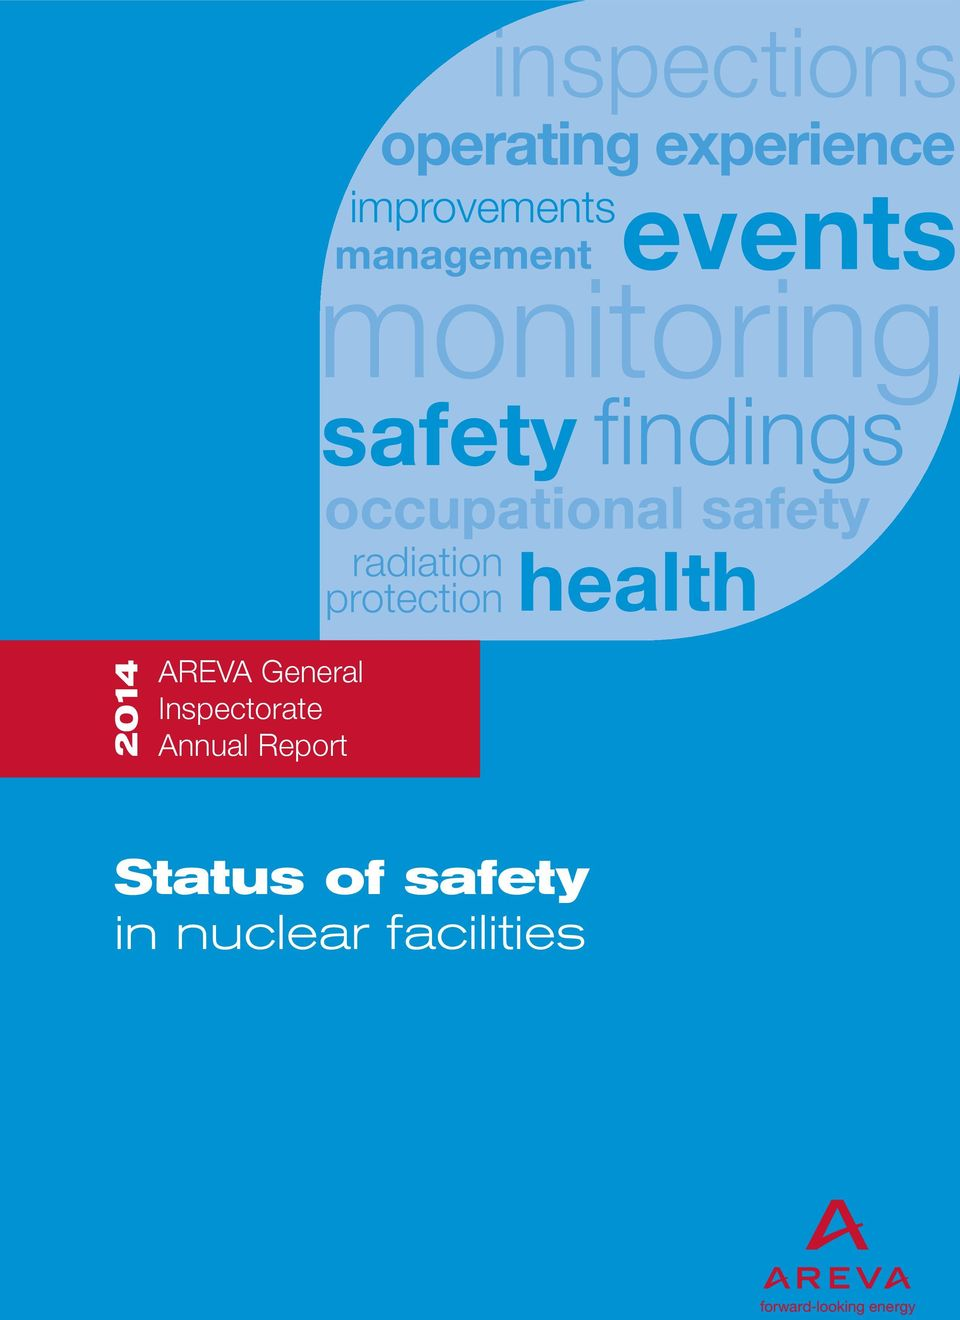 occupational safety radiation protection health 2014